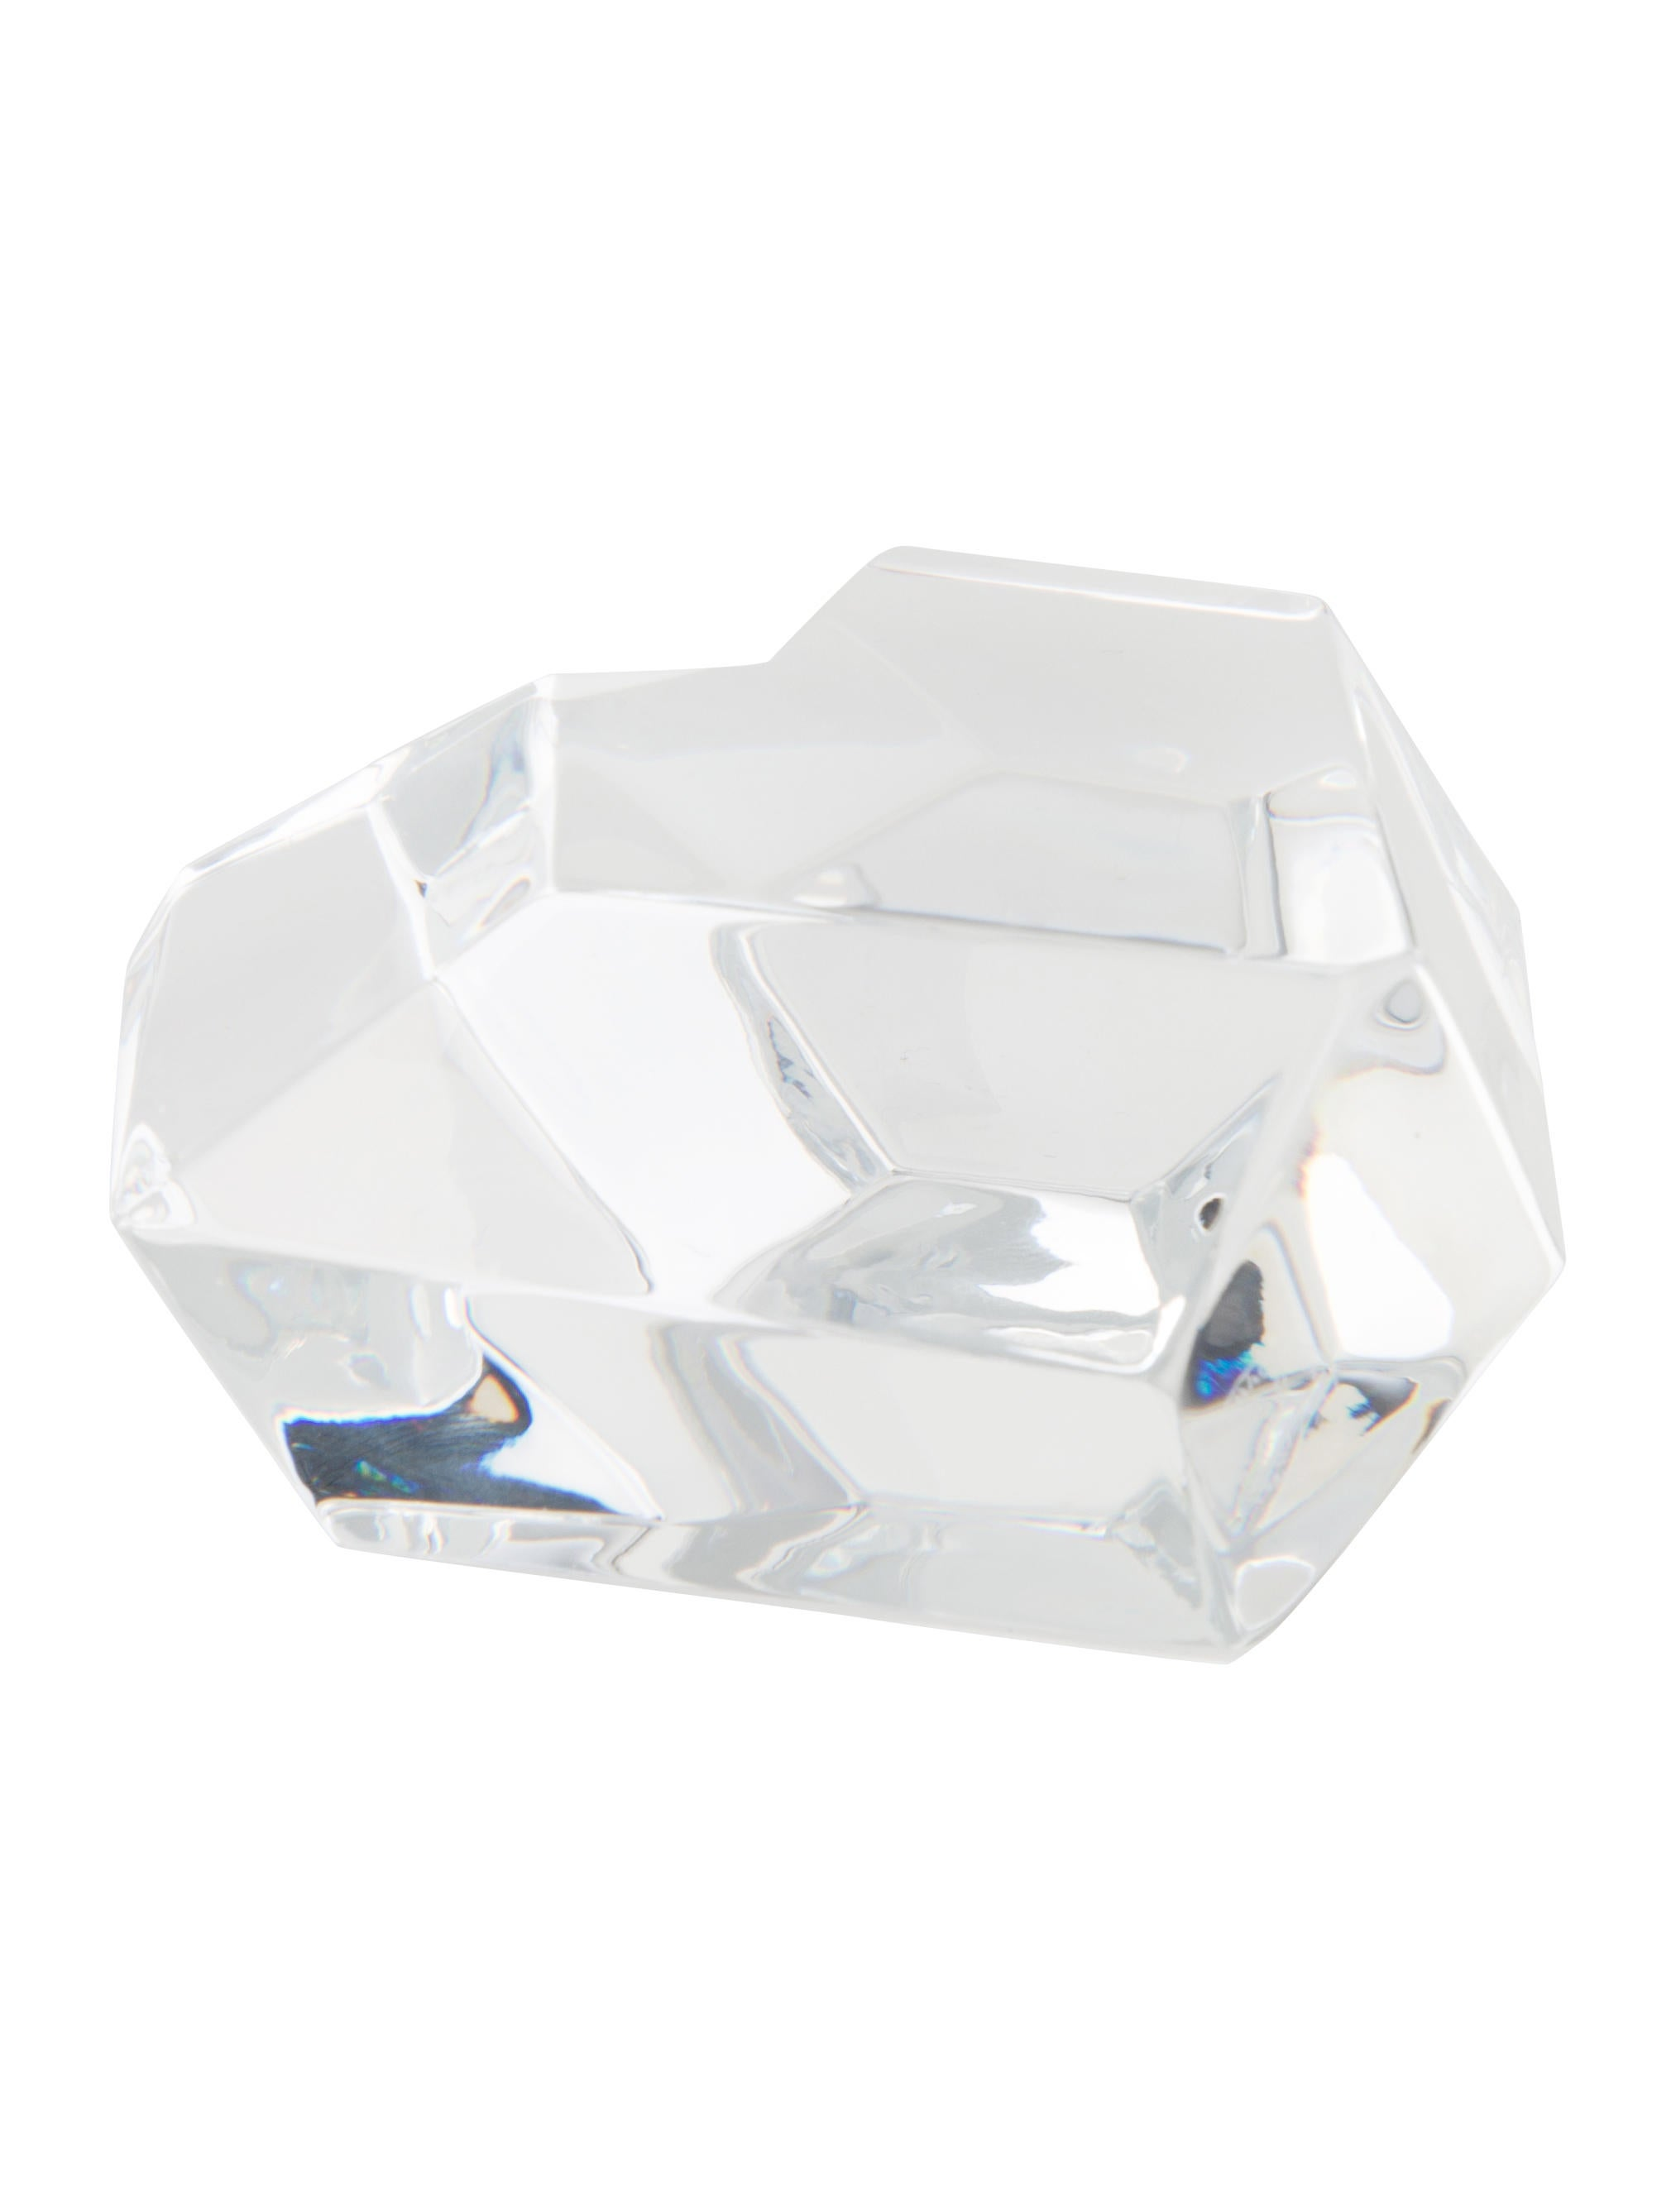 Baccarat crystal heart paperweight decor and accessories Crystal home decor